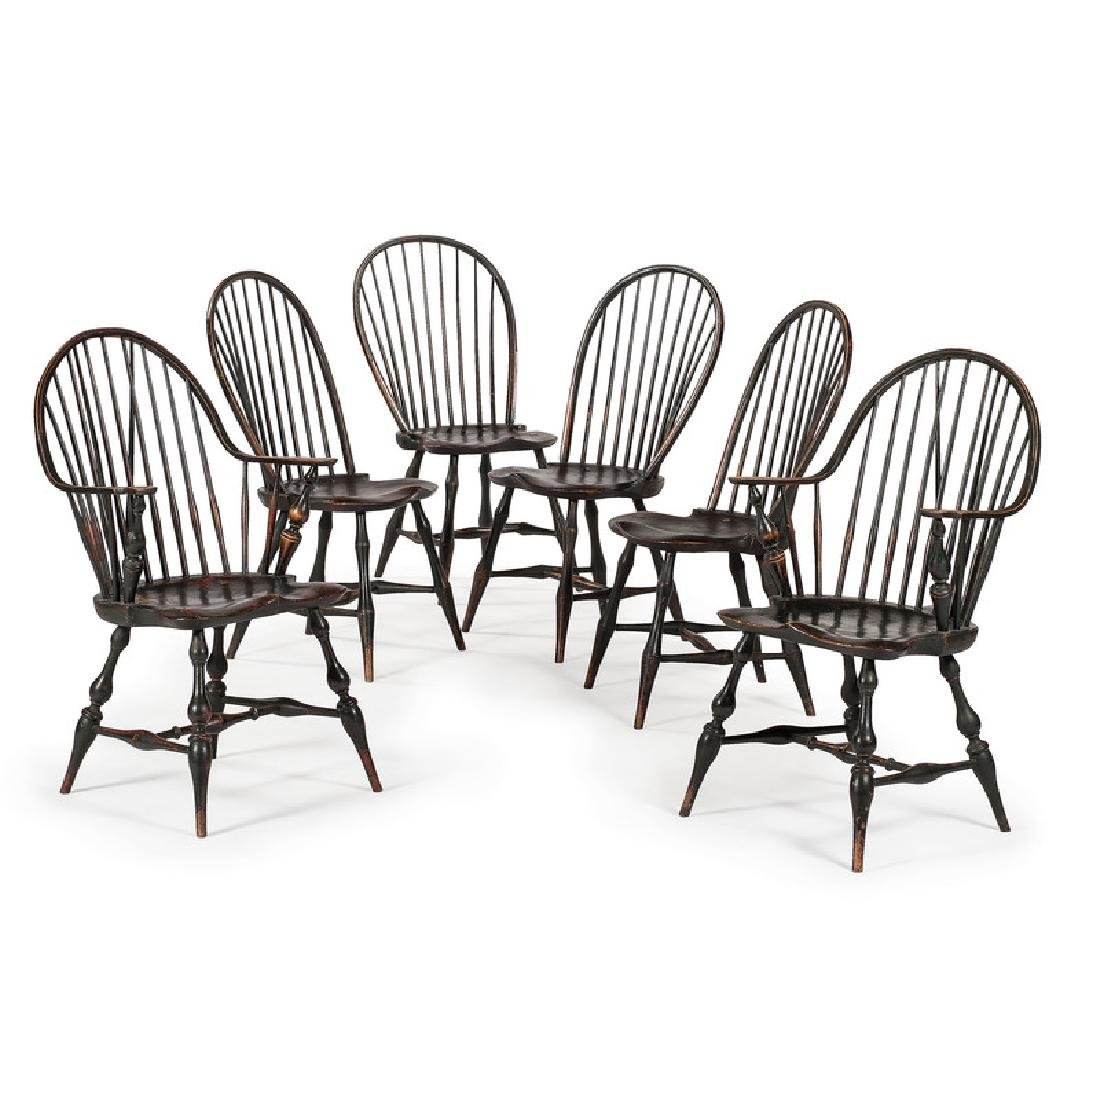 Bowback Windsor Chairs by D.R. Dimes